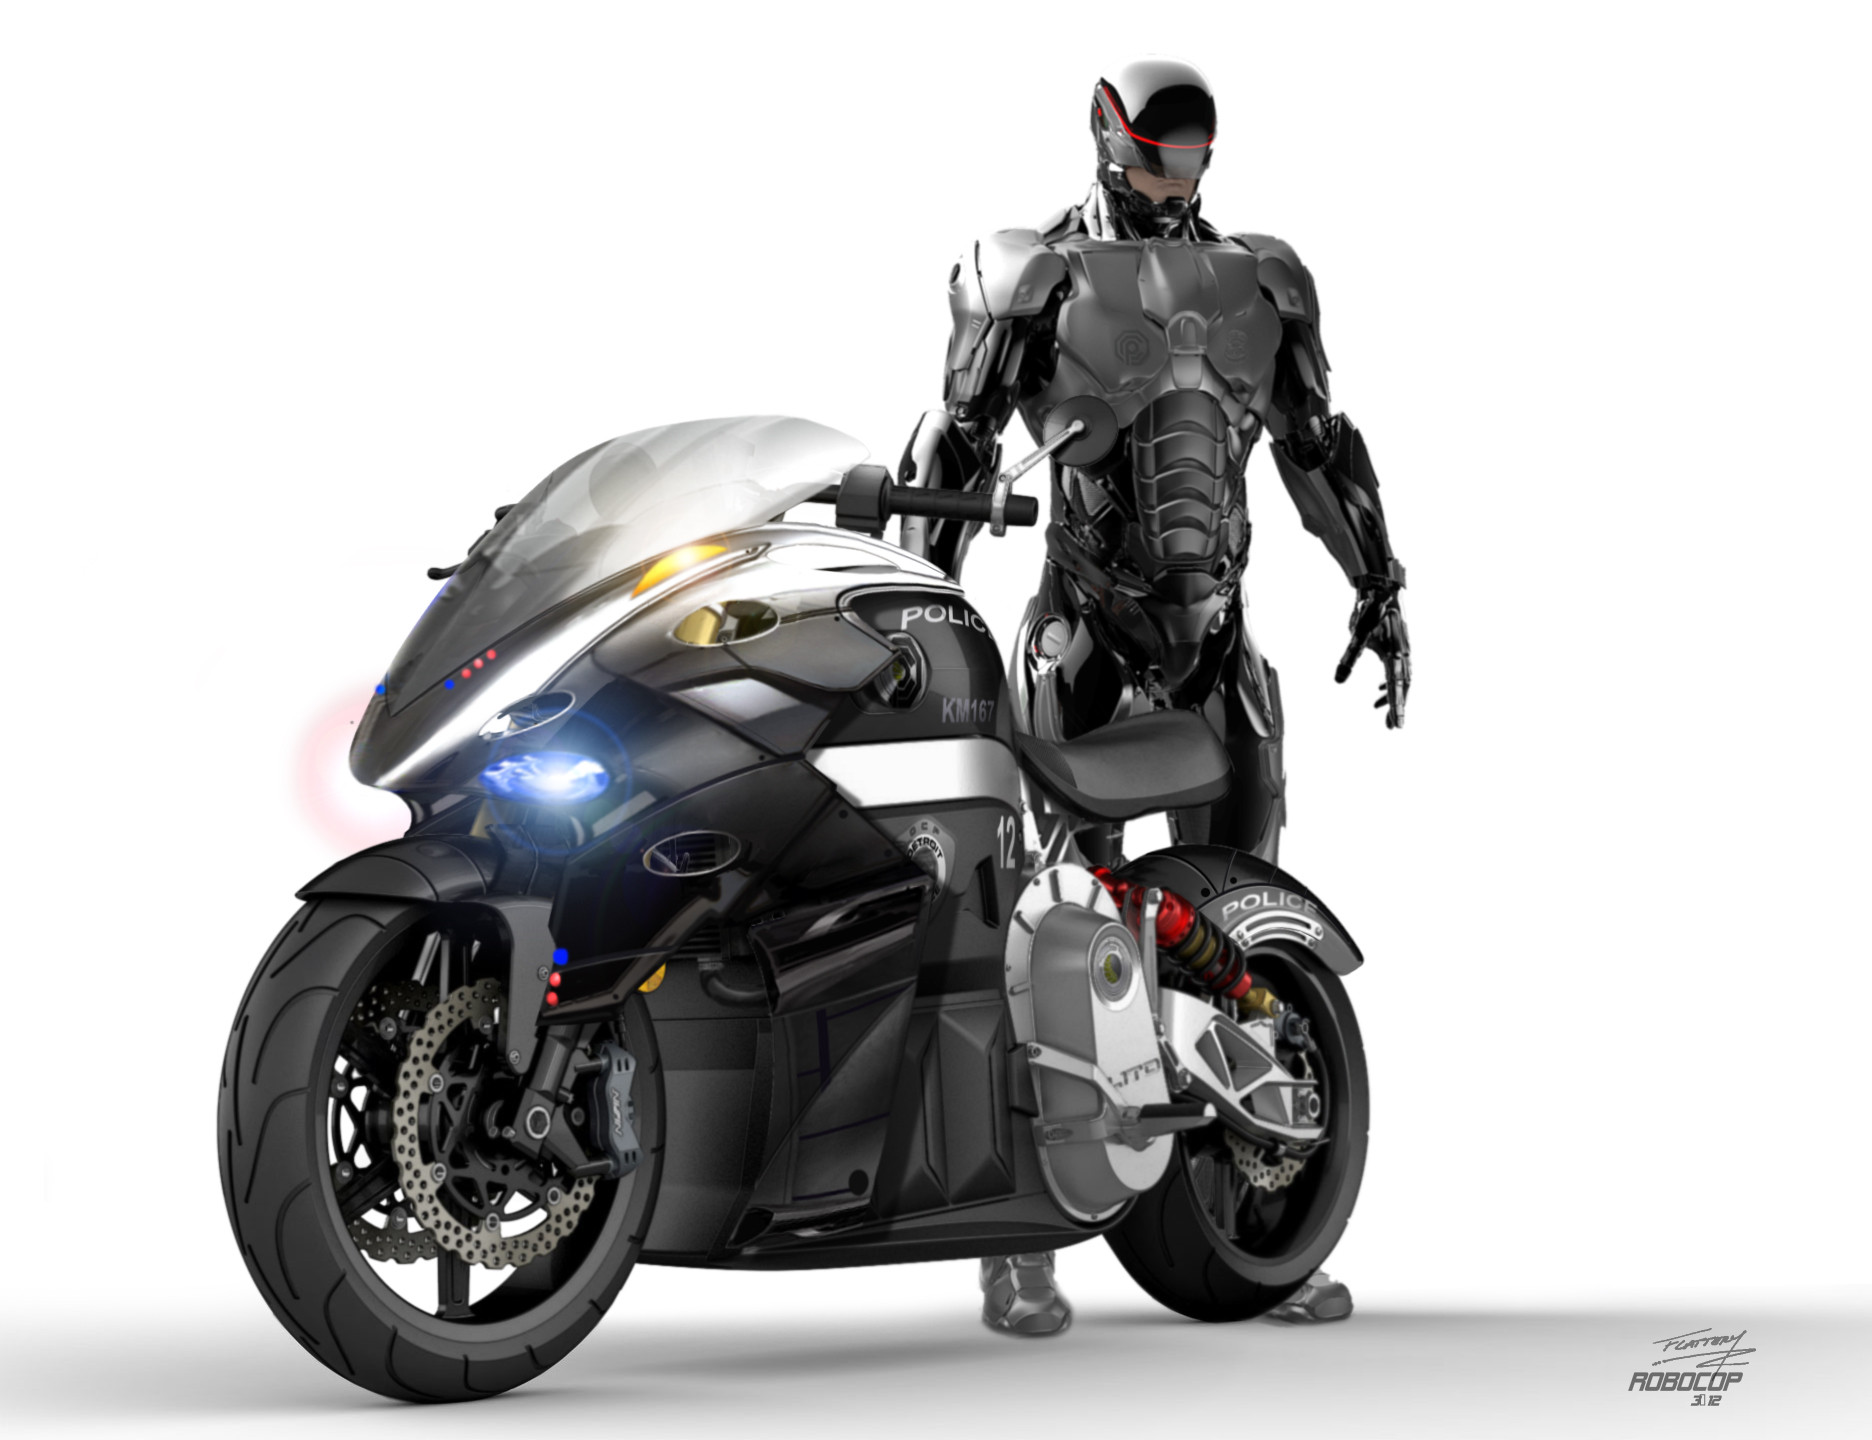 Robocop Exclusive Designs For His Motorcycle The Second Take